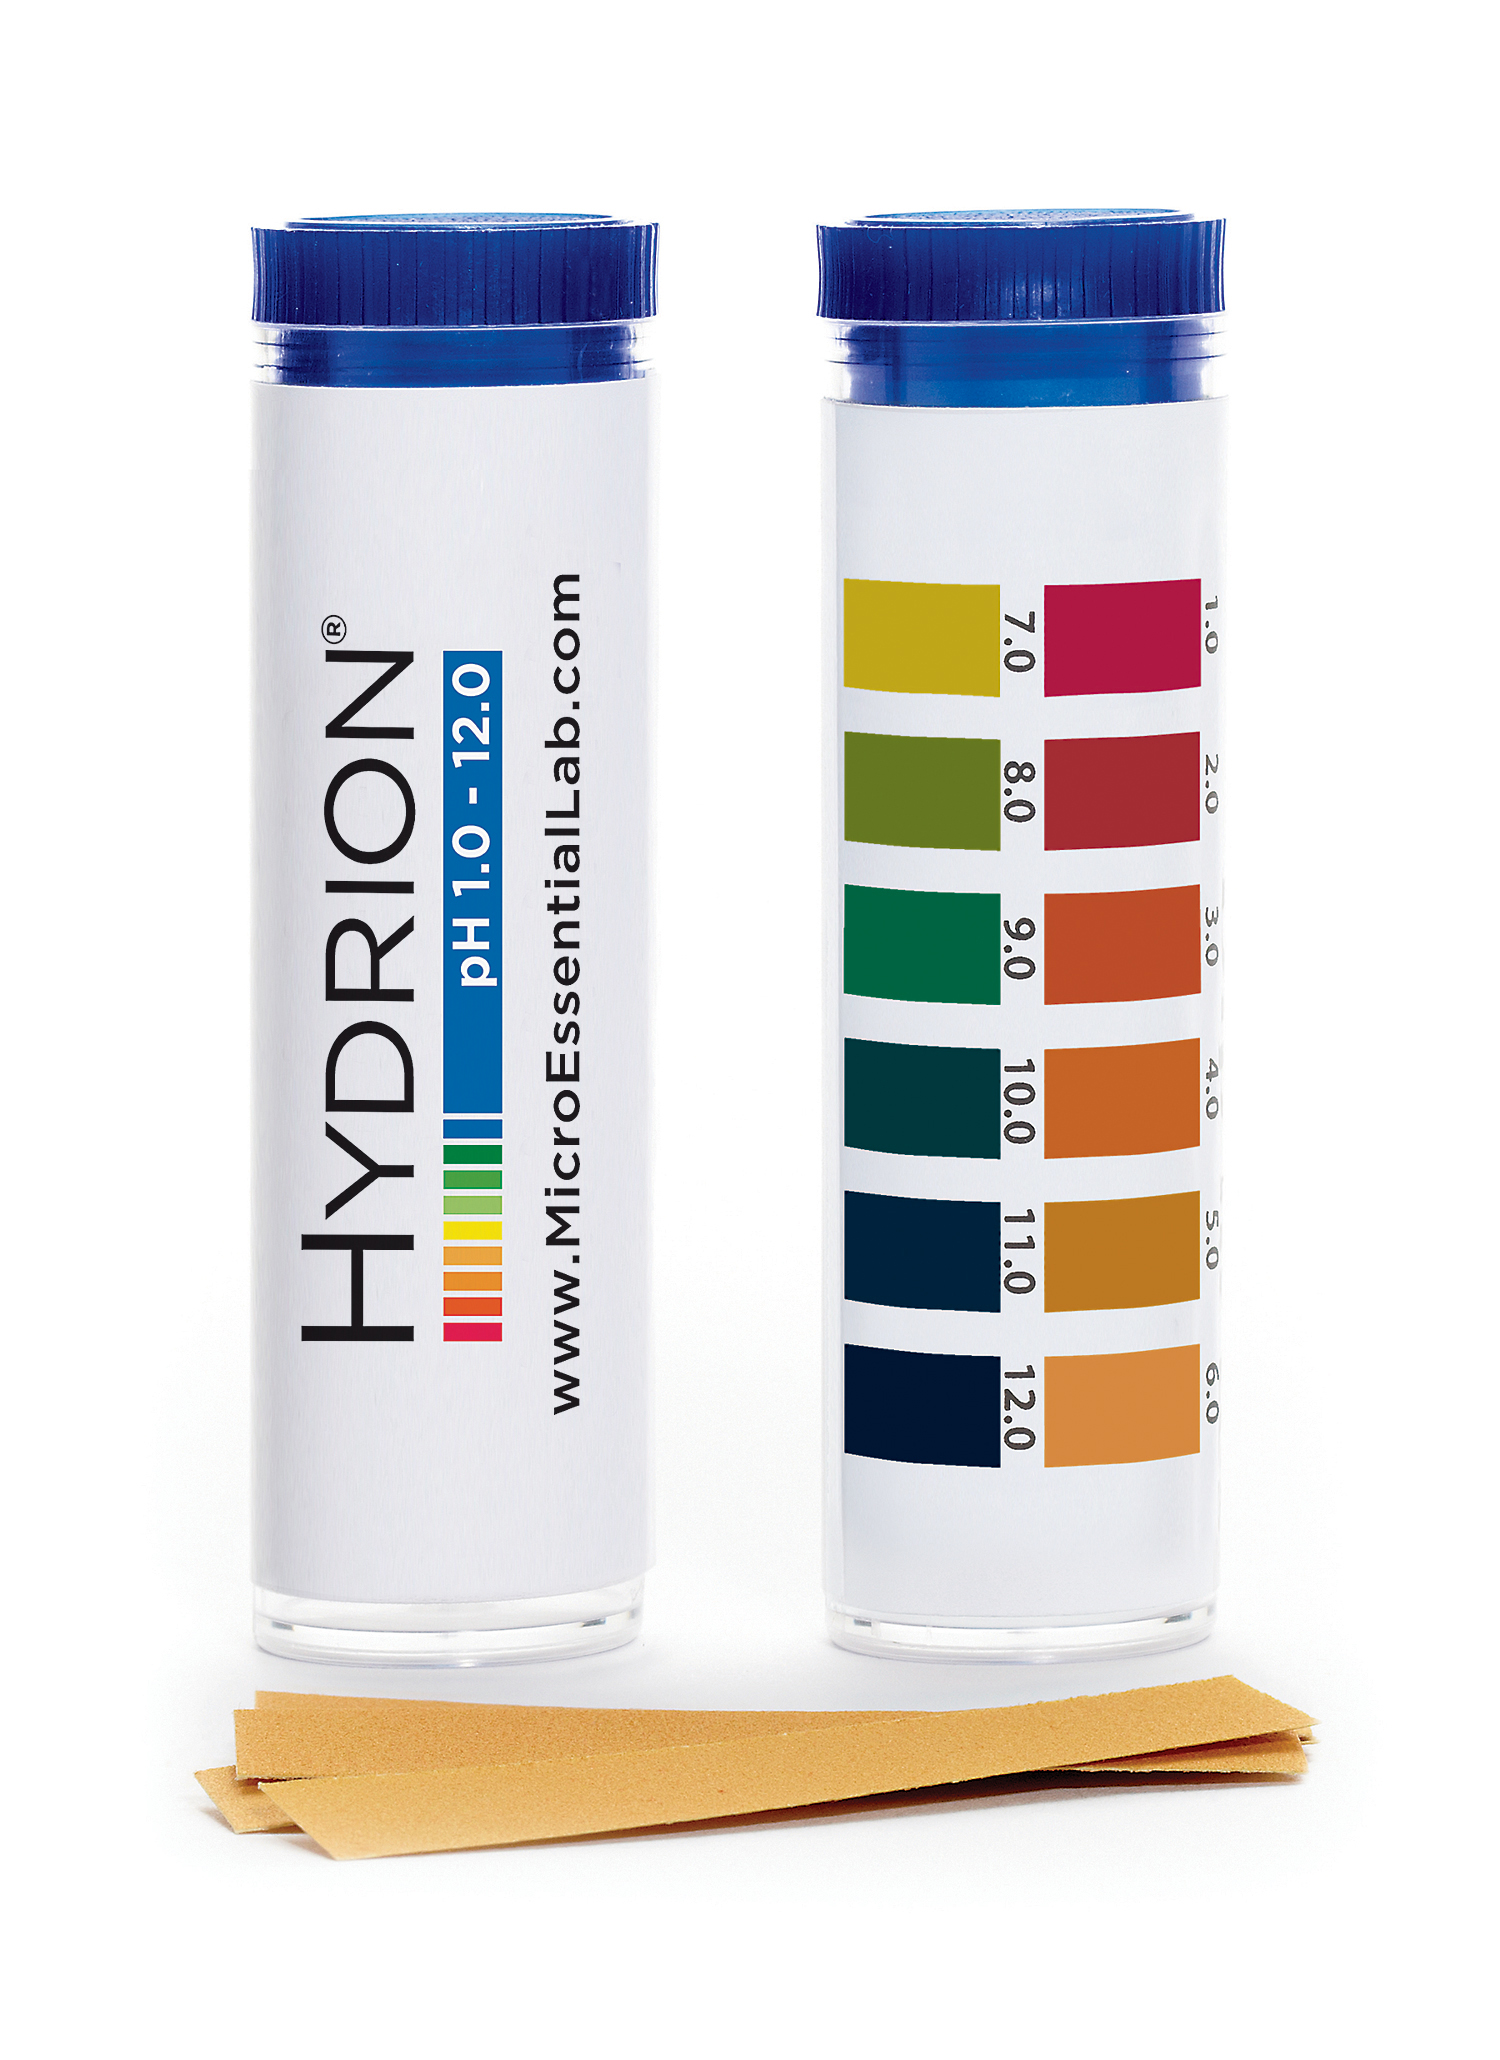 Universal indicator overhead color chart hydrion 112 ph test strips nvjuhfo Choice Image